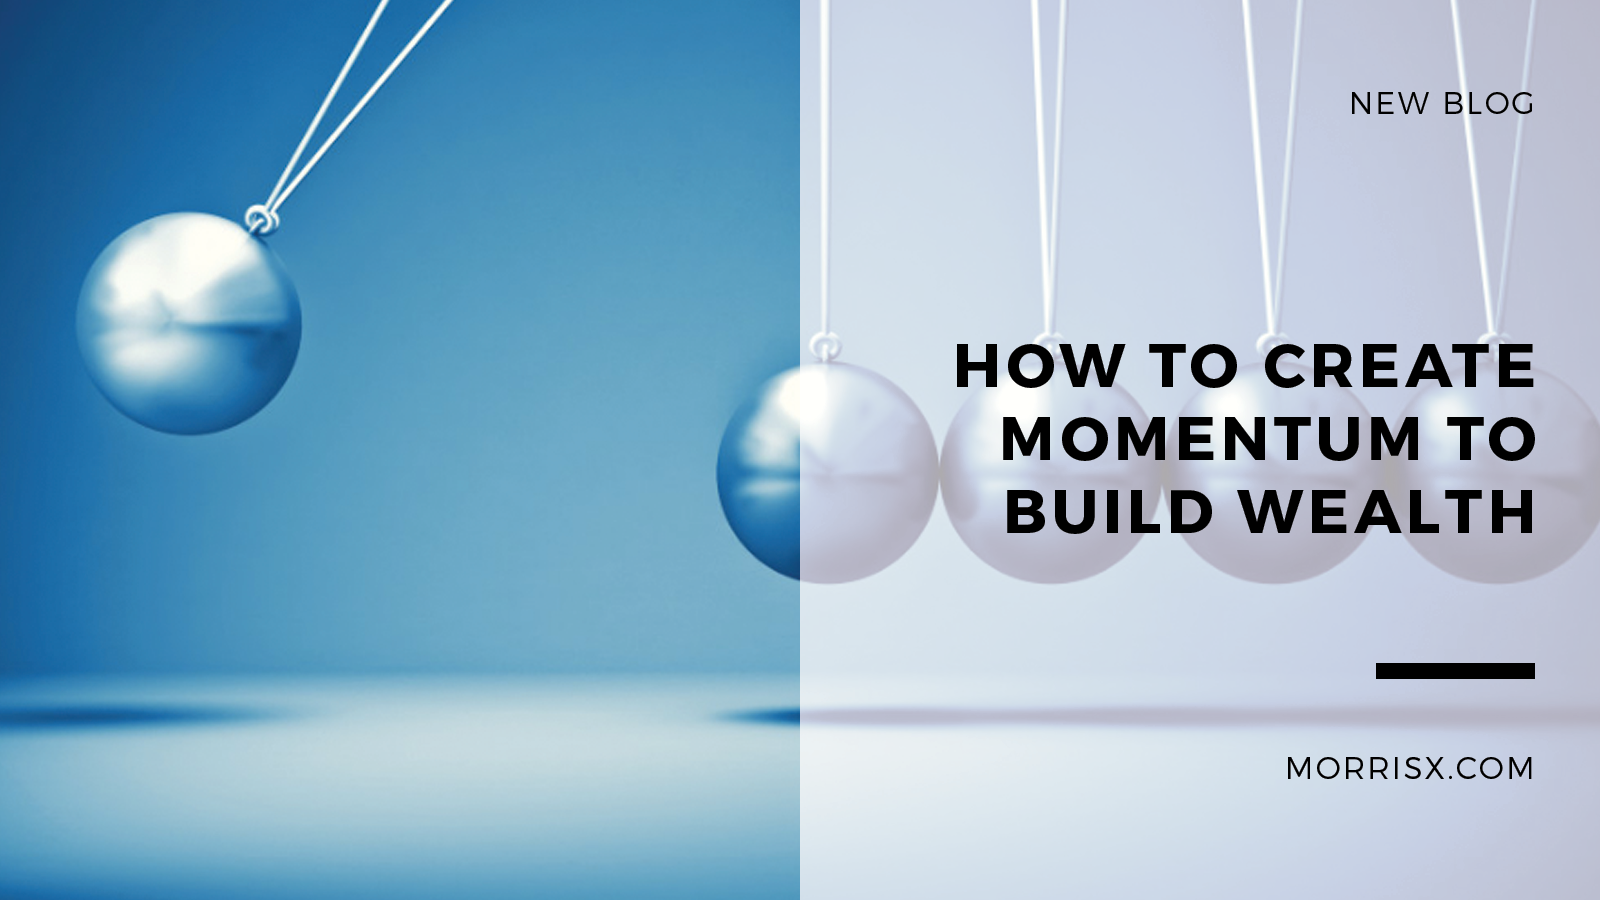 How To Create Momentum To Build Wealth